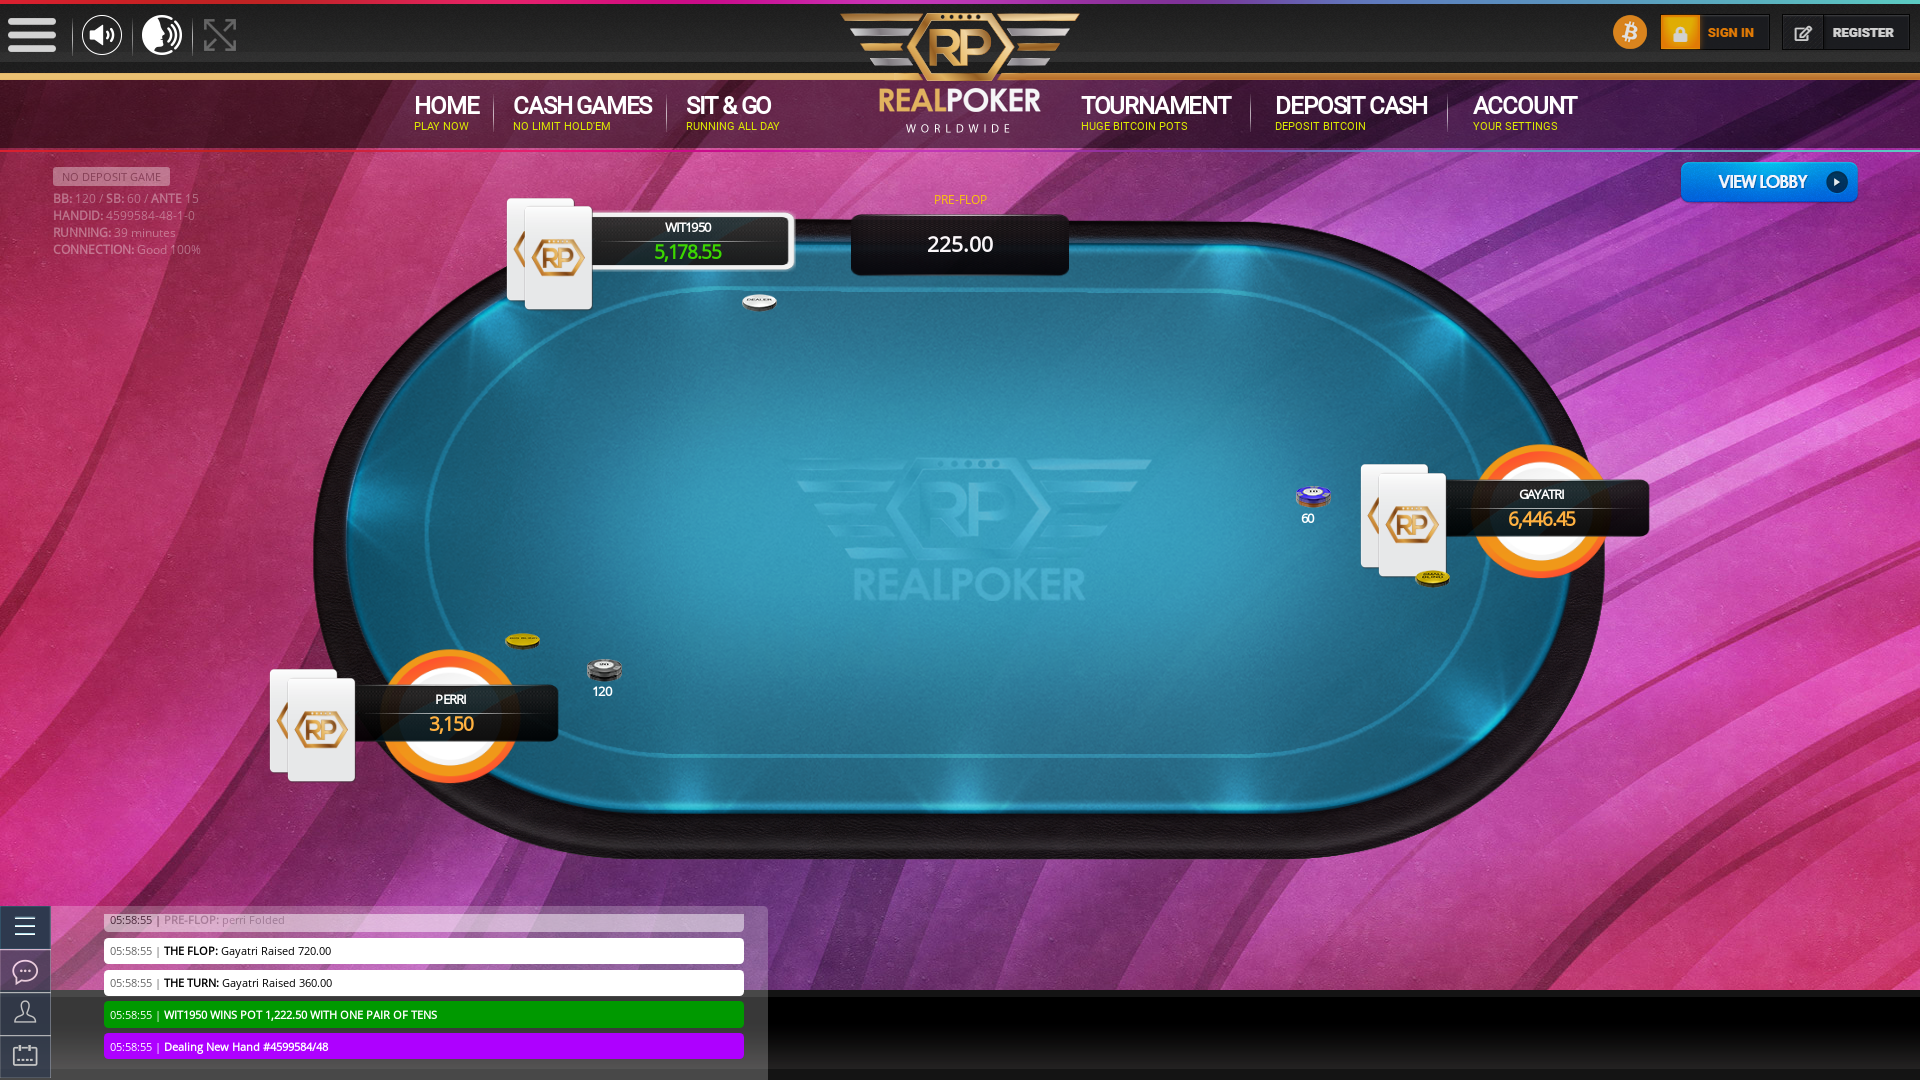 Rio de Janeiro real poker on a 10 player table in the 39th minute